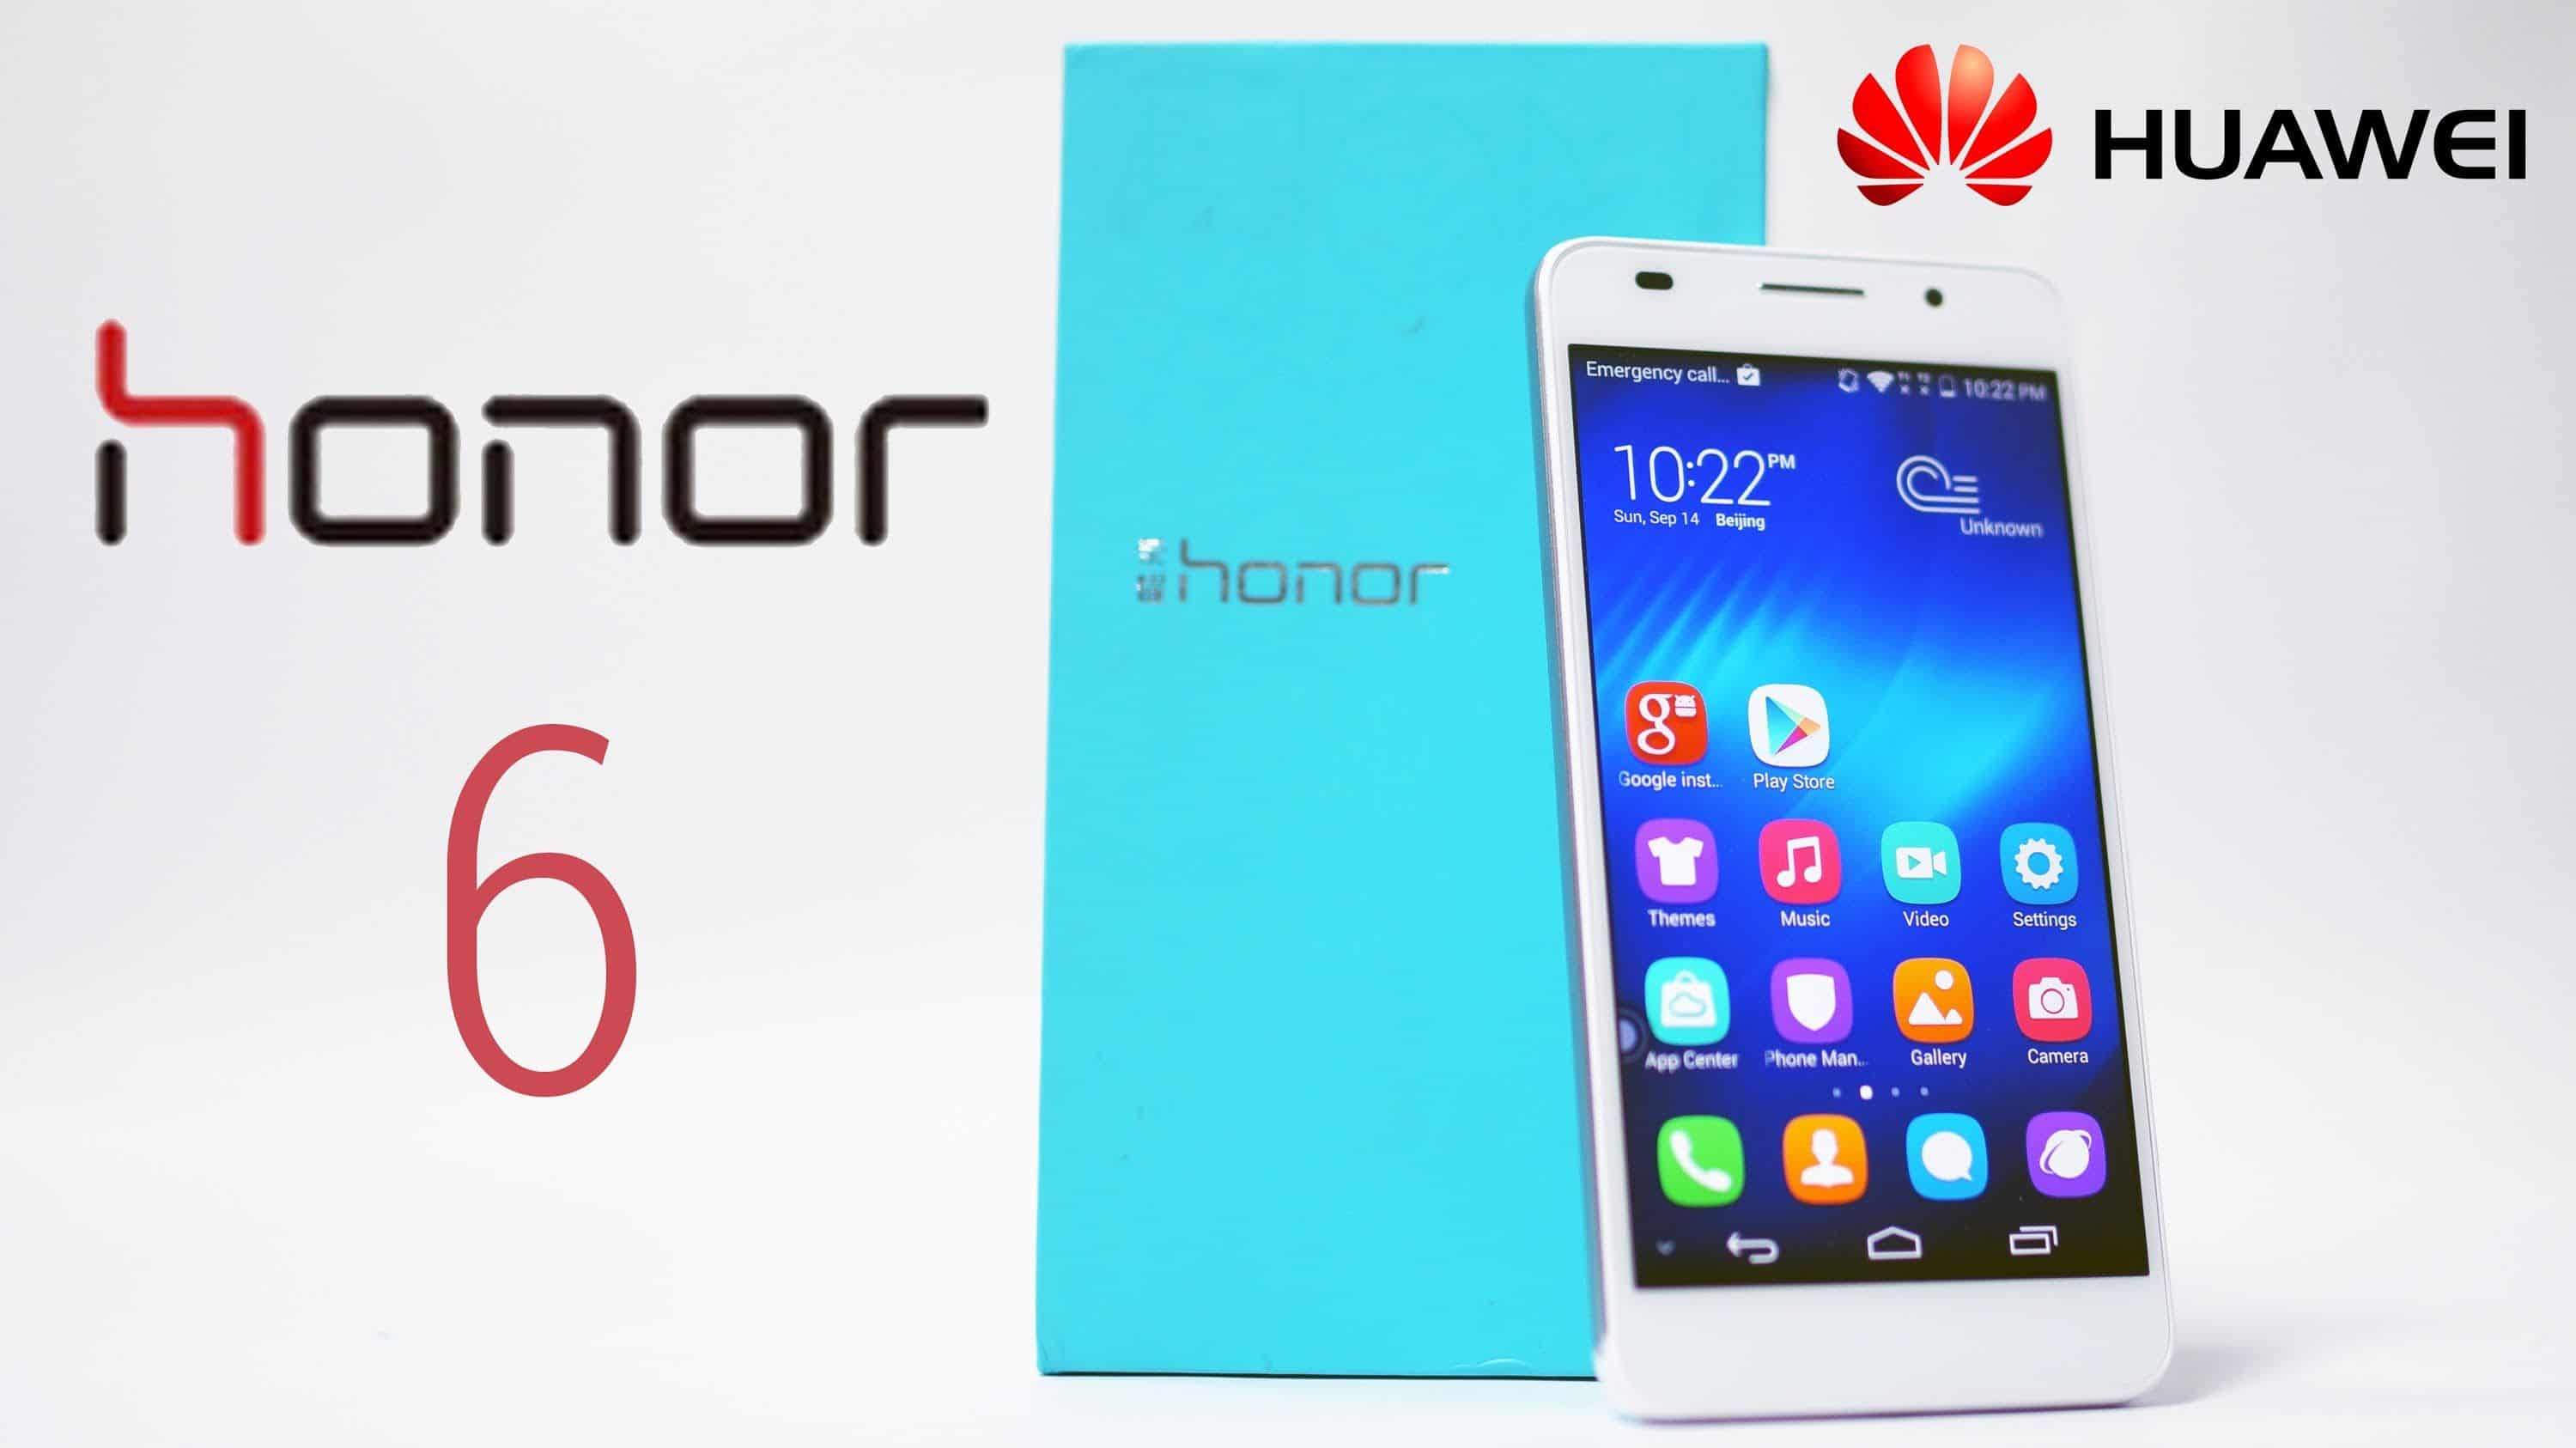 amazon Huawei Honor 6 reviews Huawei Honor 6 on amazon newest Huawei Honor 6 prices of Huawei Honor 6 Huawei Honor 6 deals best deals on Huawei Honor 6 buying a Huawei Honor 6 lastest Huawei Honor 6 what is a Huawei Honor 6 Huawei Honor 6 at amazon where to buy Huawei Honor 6 where can i you get a Huawei Honor 6 online purchase Huawei Honor 6 Huawei Honor 6 sale off Huawei Honor 6 discount cheapest Huawei Honor 6 Huawei Honor 6 for sale